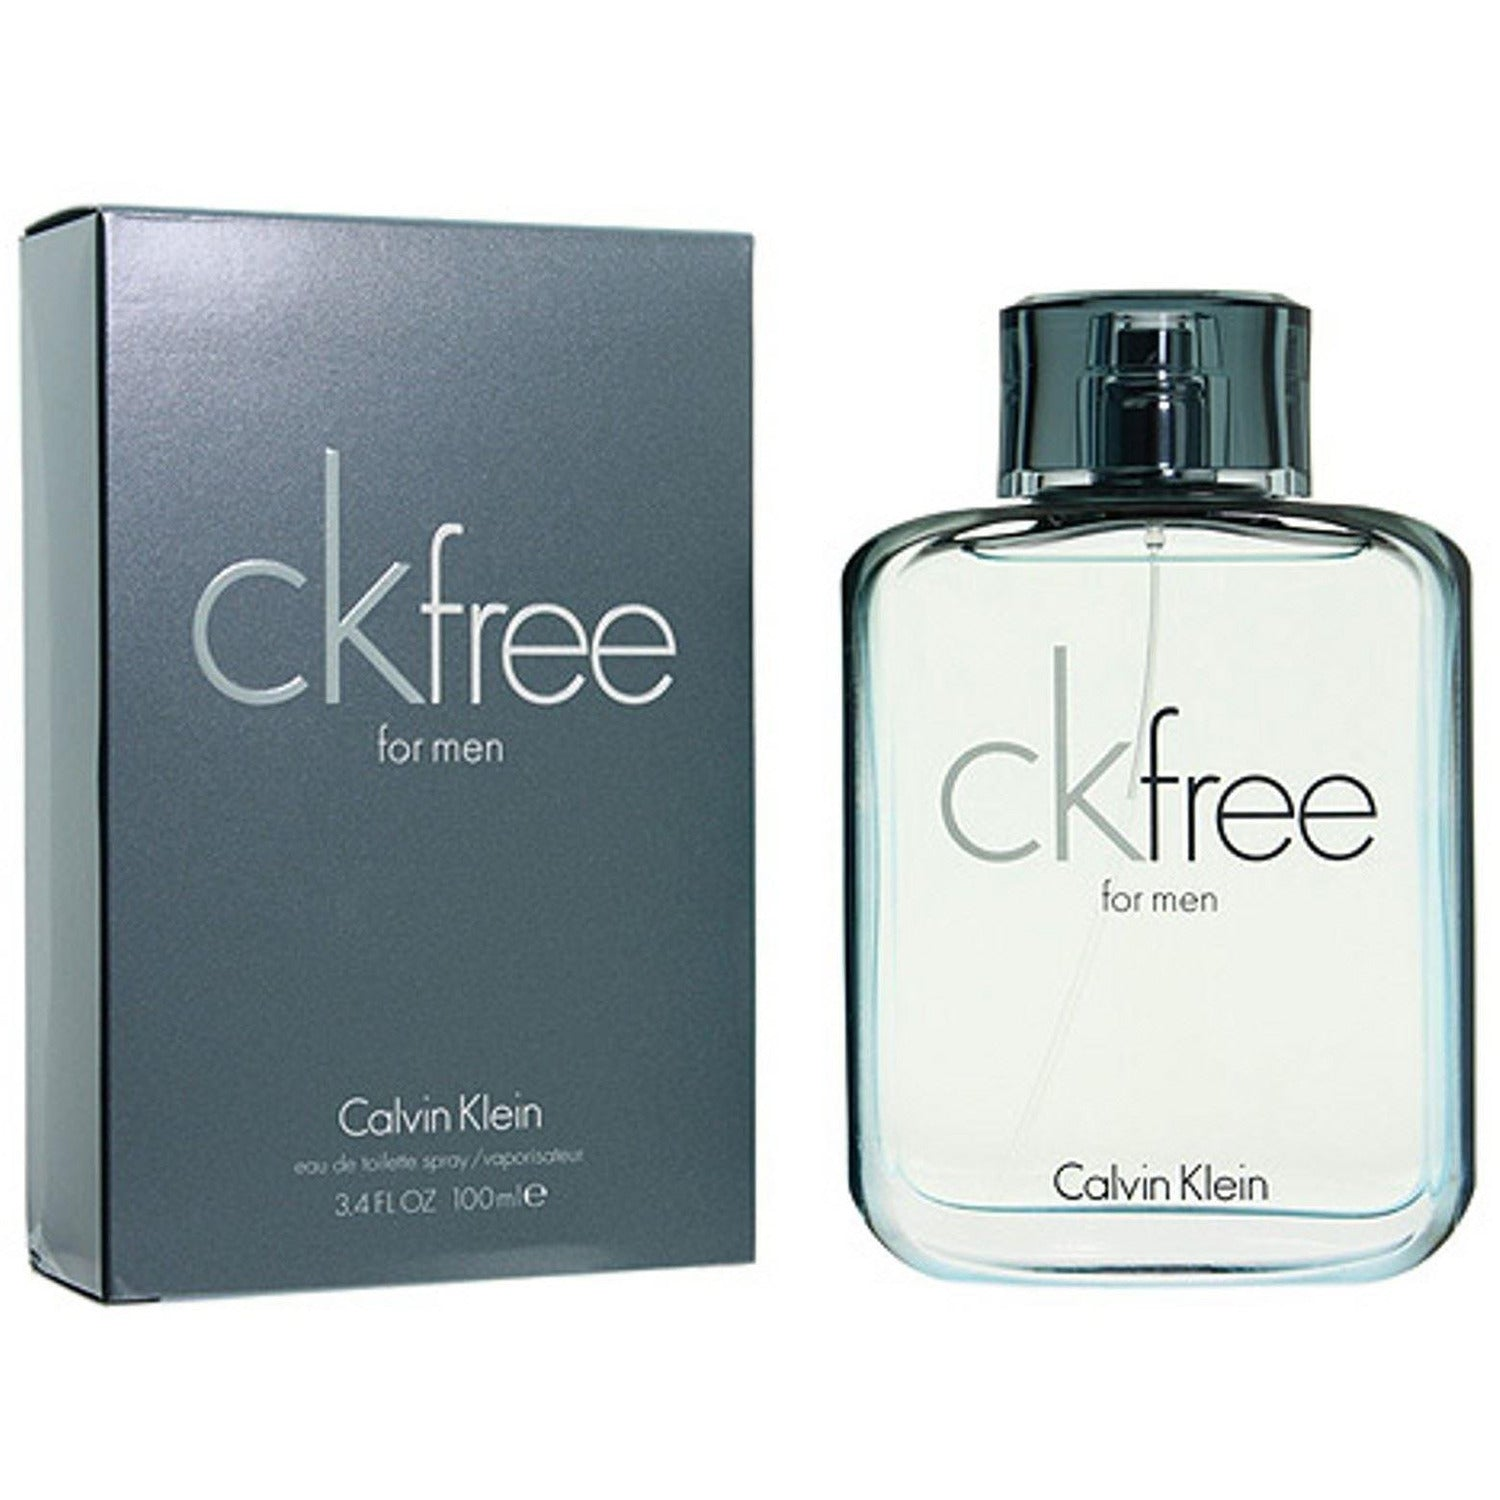 ck-free-by-calvin-klein-3-4-oz-edt-cologne-new-in-retail-box